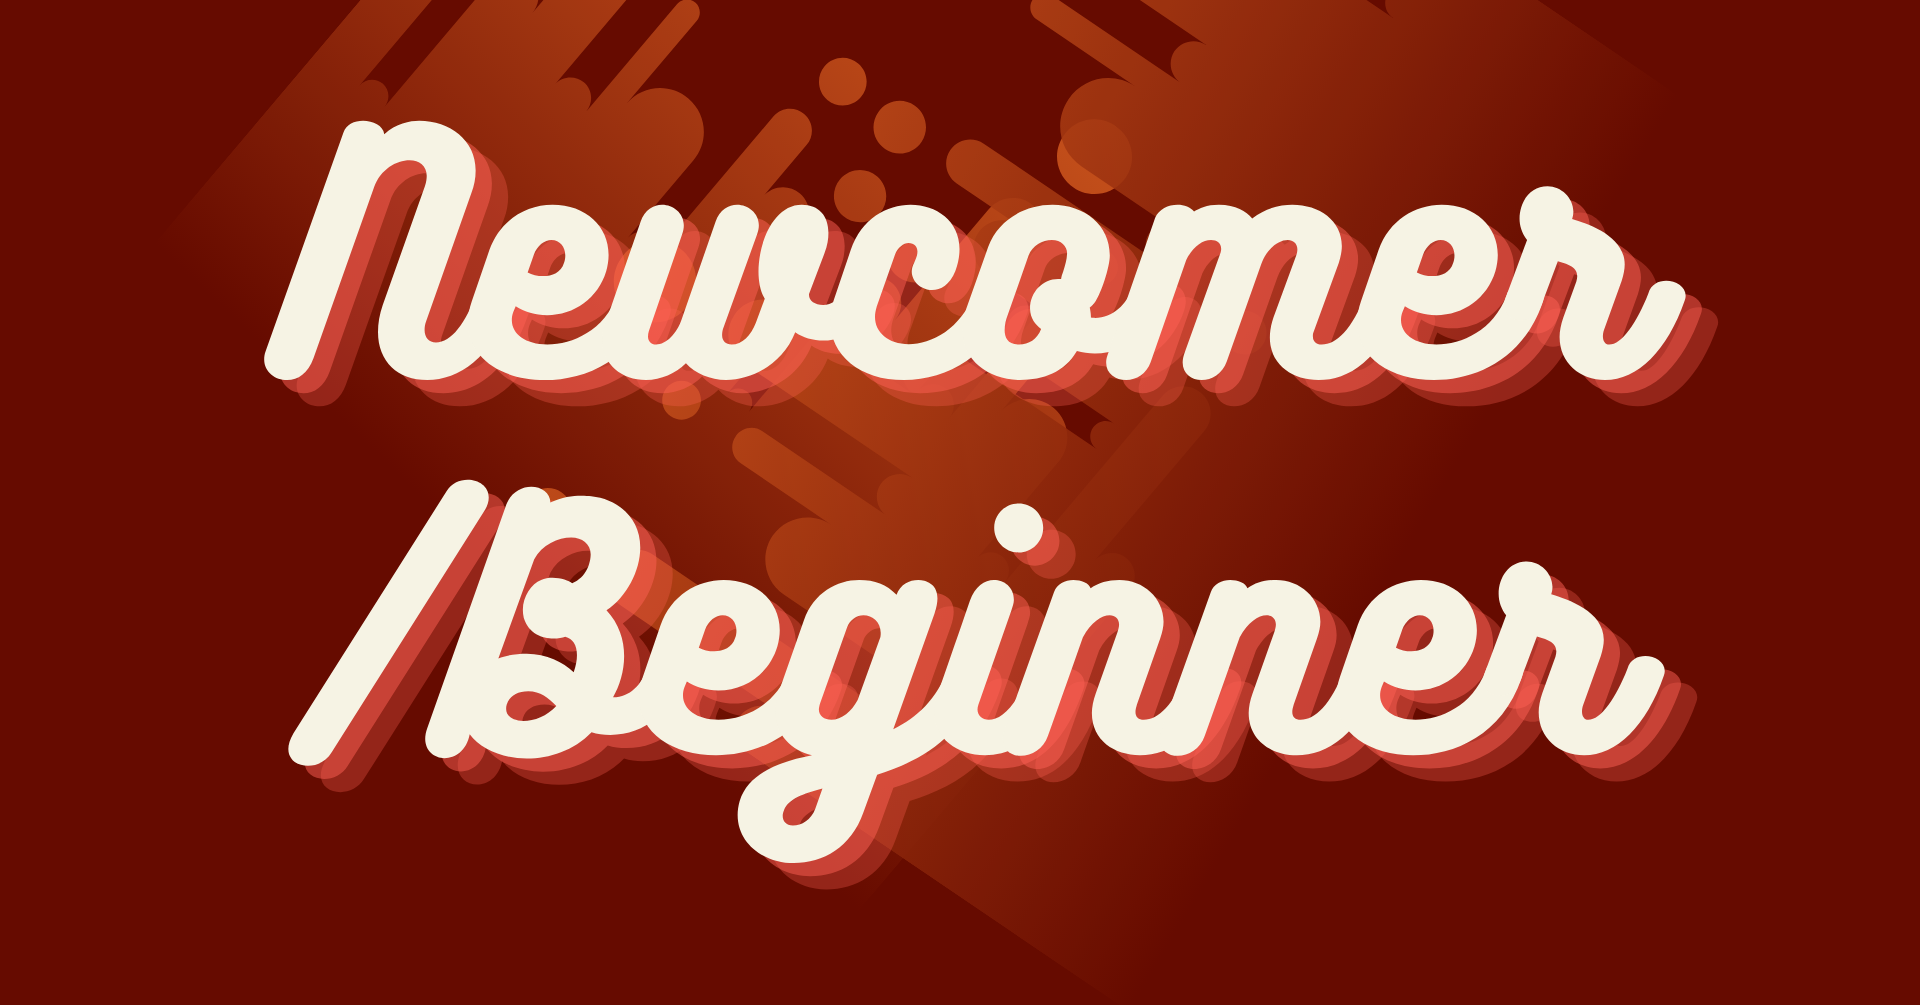 Newcomer and Beginner